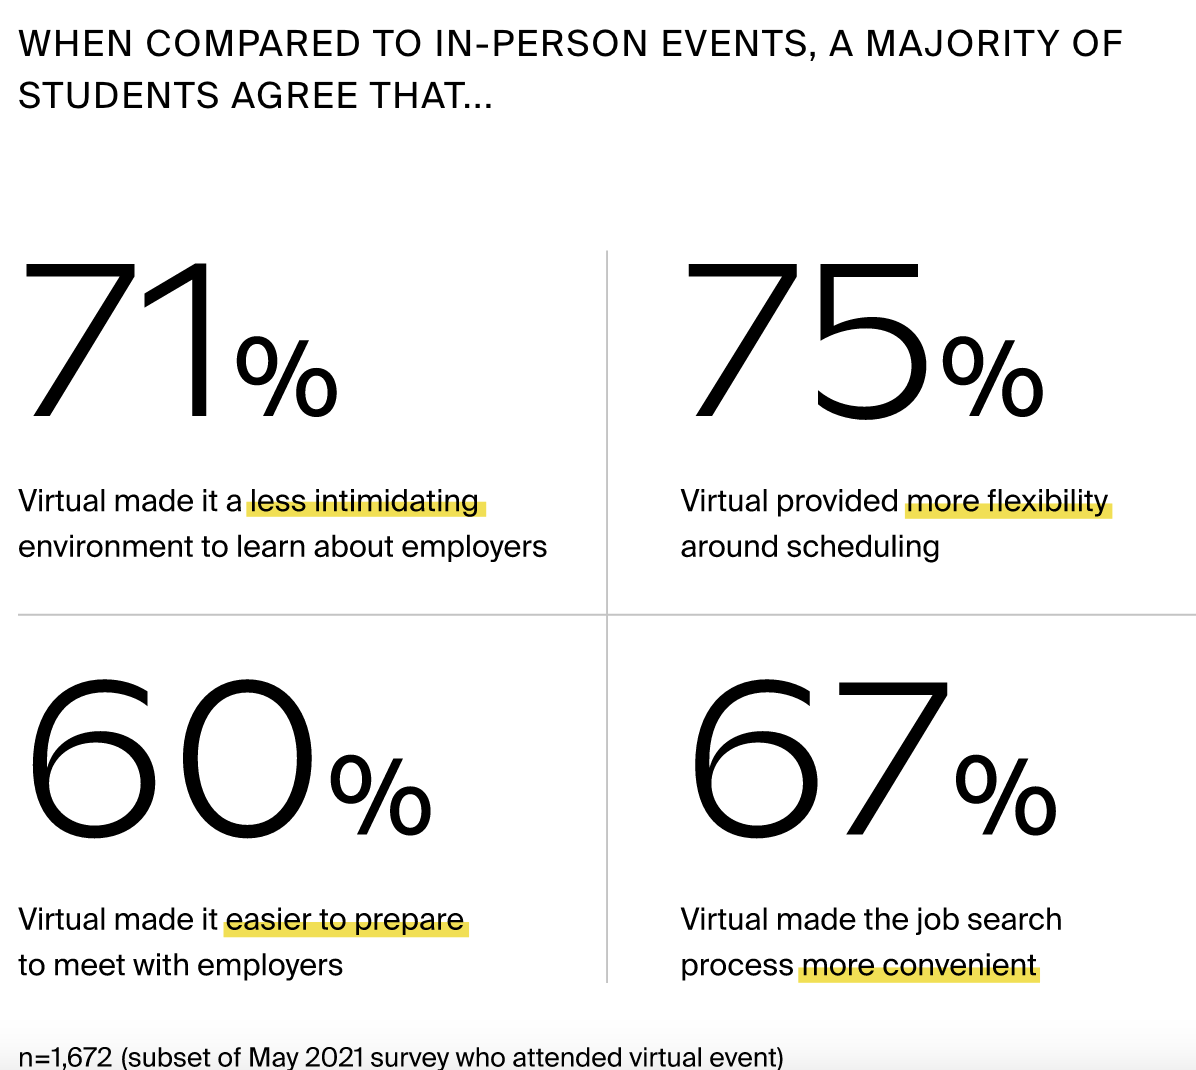 When compared to in-person events, a majority of students agree that: virtual events made it less intimidating to learn about employers (71%), vitual provided more flexibilty around scheduling (75%), virtual made it easier to preapre to meet with employers (65%),virtual made the job search process more convienant (67%). n=1,673 (subset of May 2021 survey who attended virtual event.)